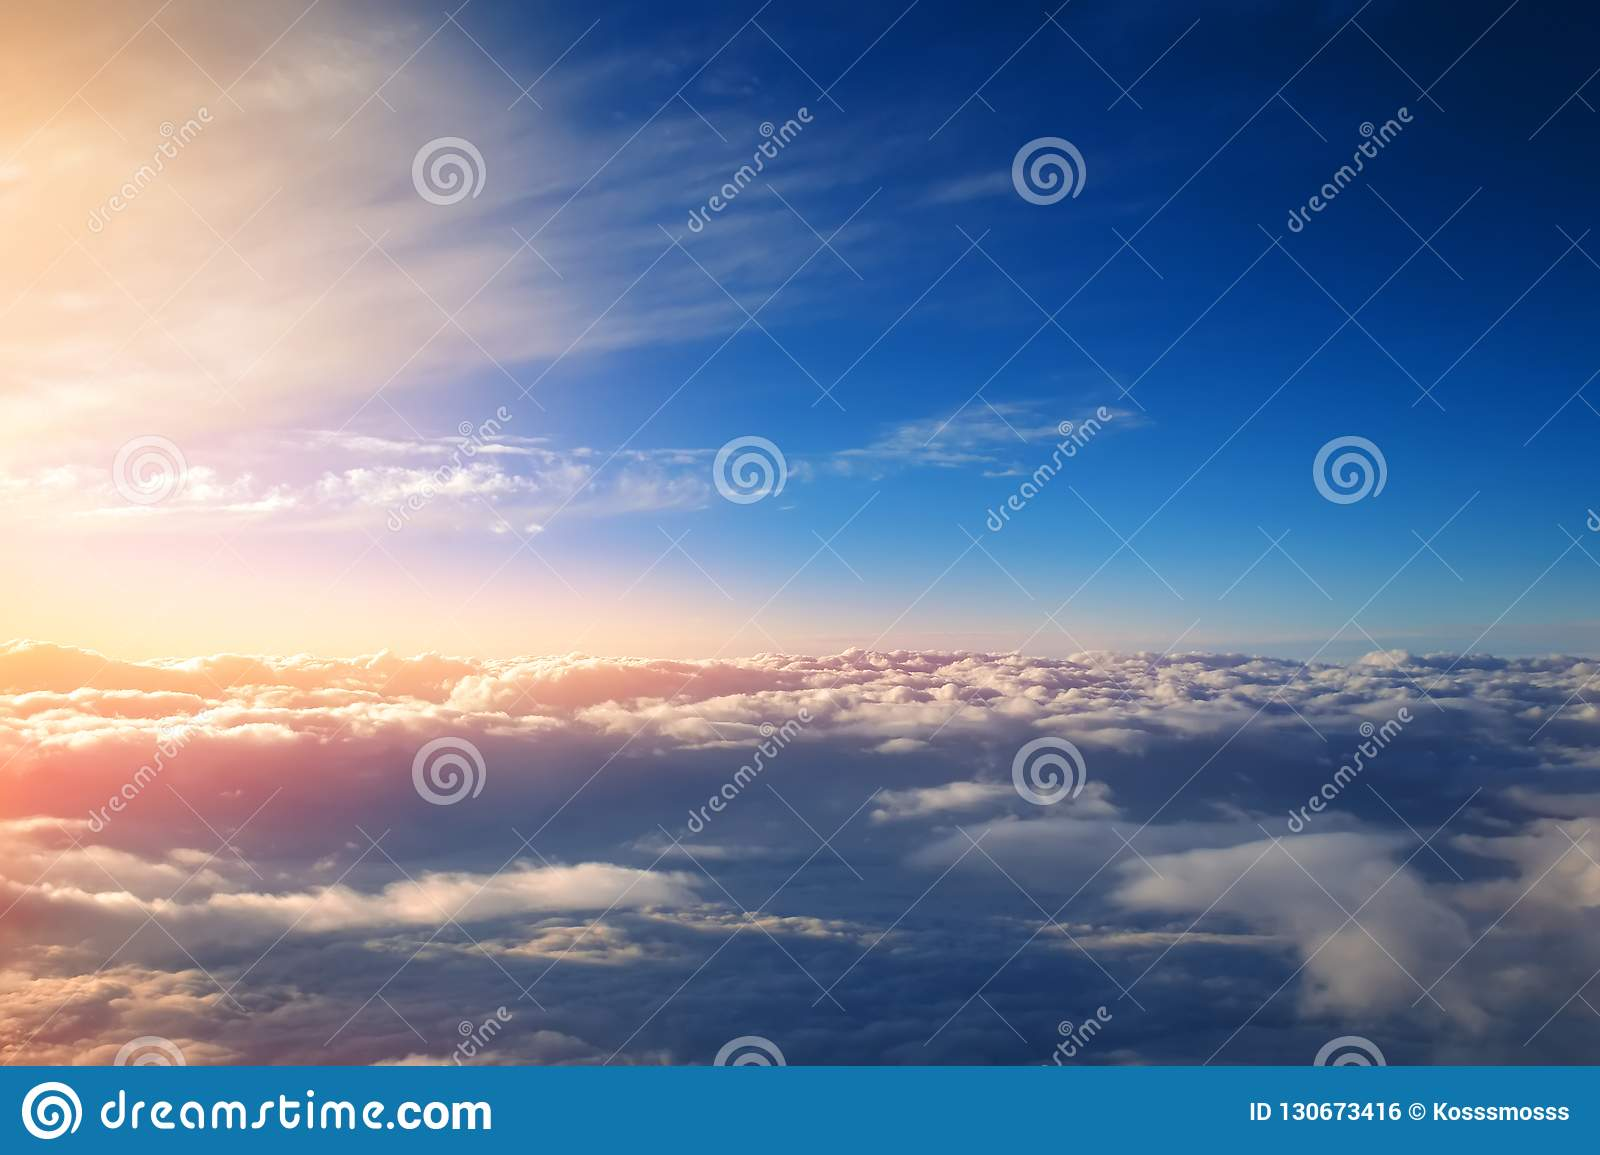 Sunset with bright sun rays over cumulus clouds view from the window of an airplane